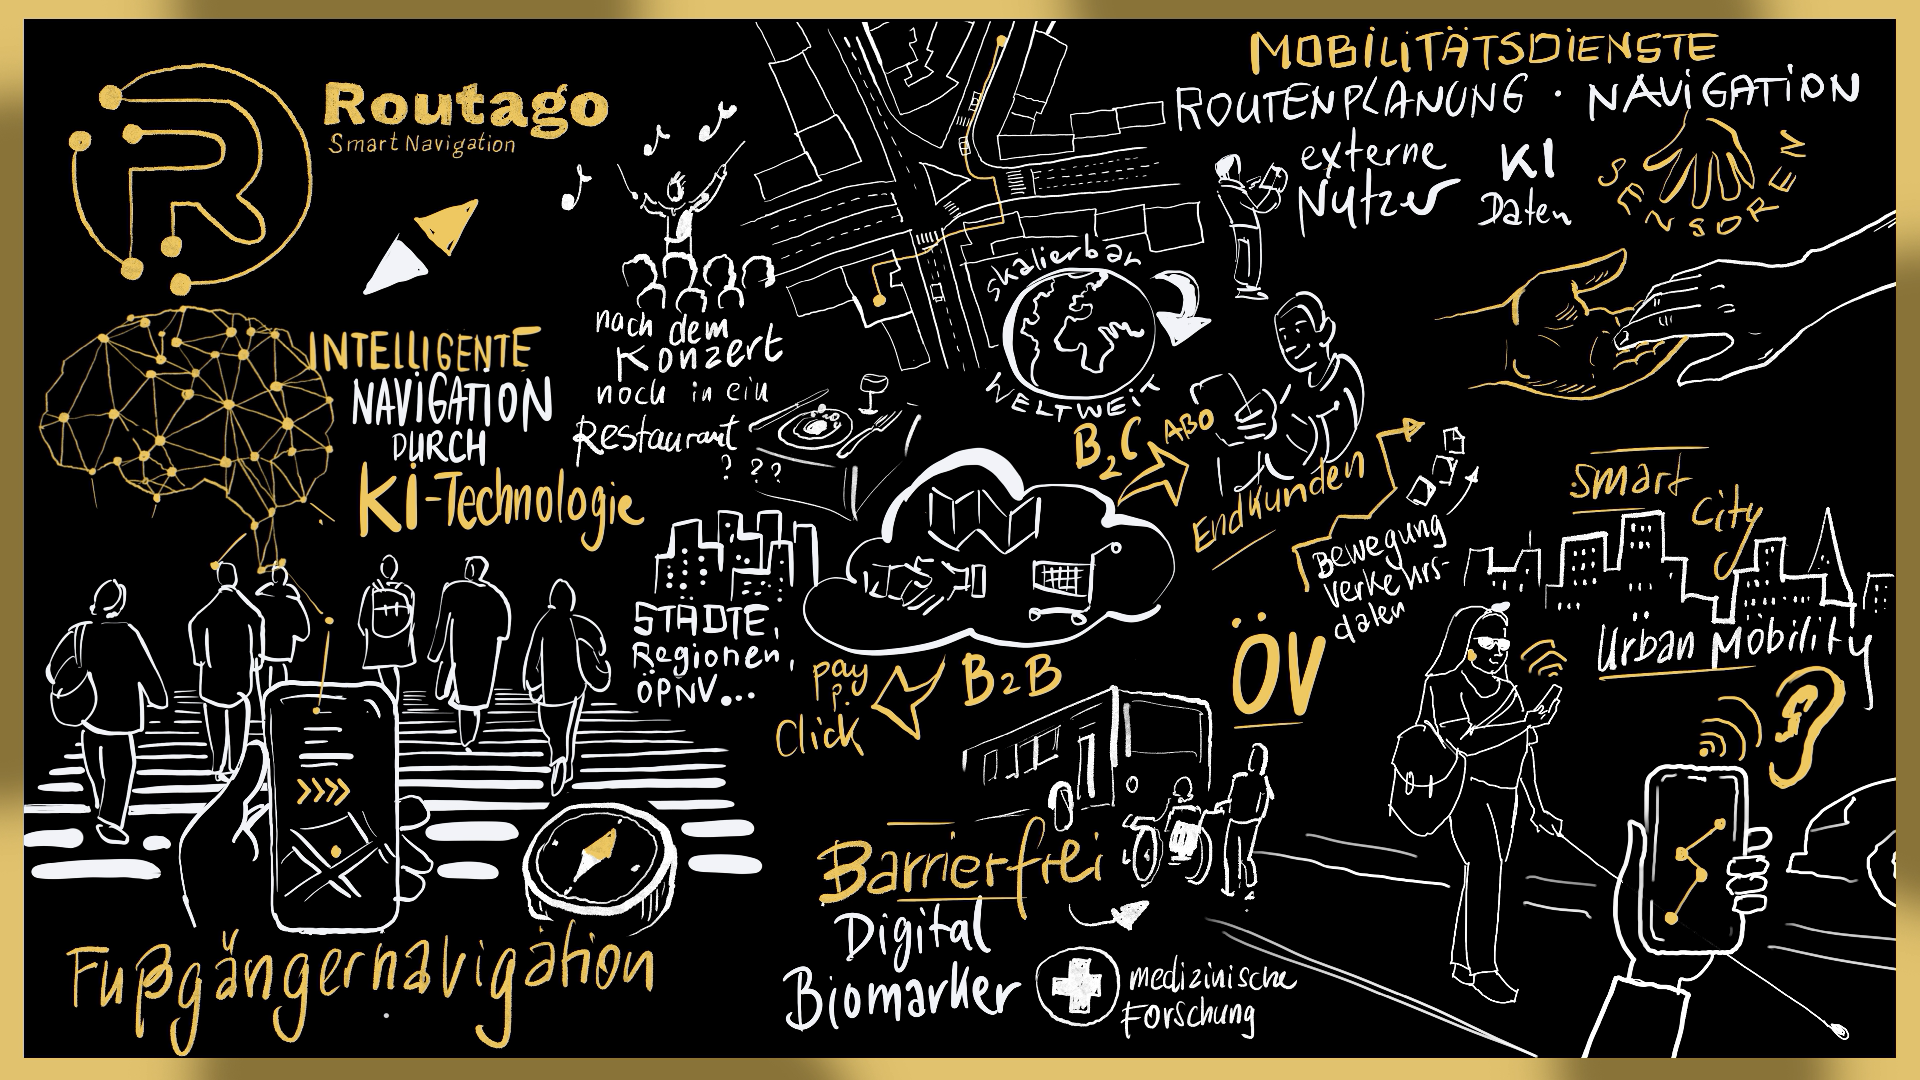 The Routago technology as a map with its fields of application. A graphical recording of our presentation at the German Digital Award 2020